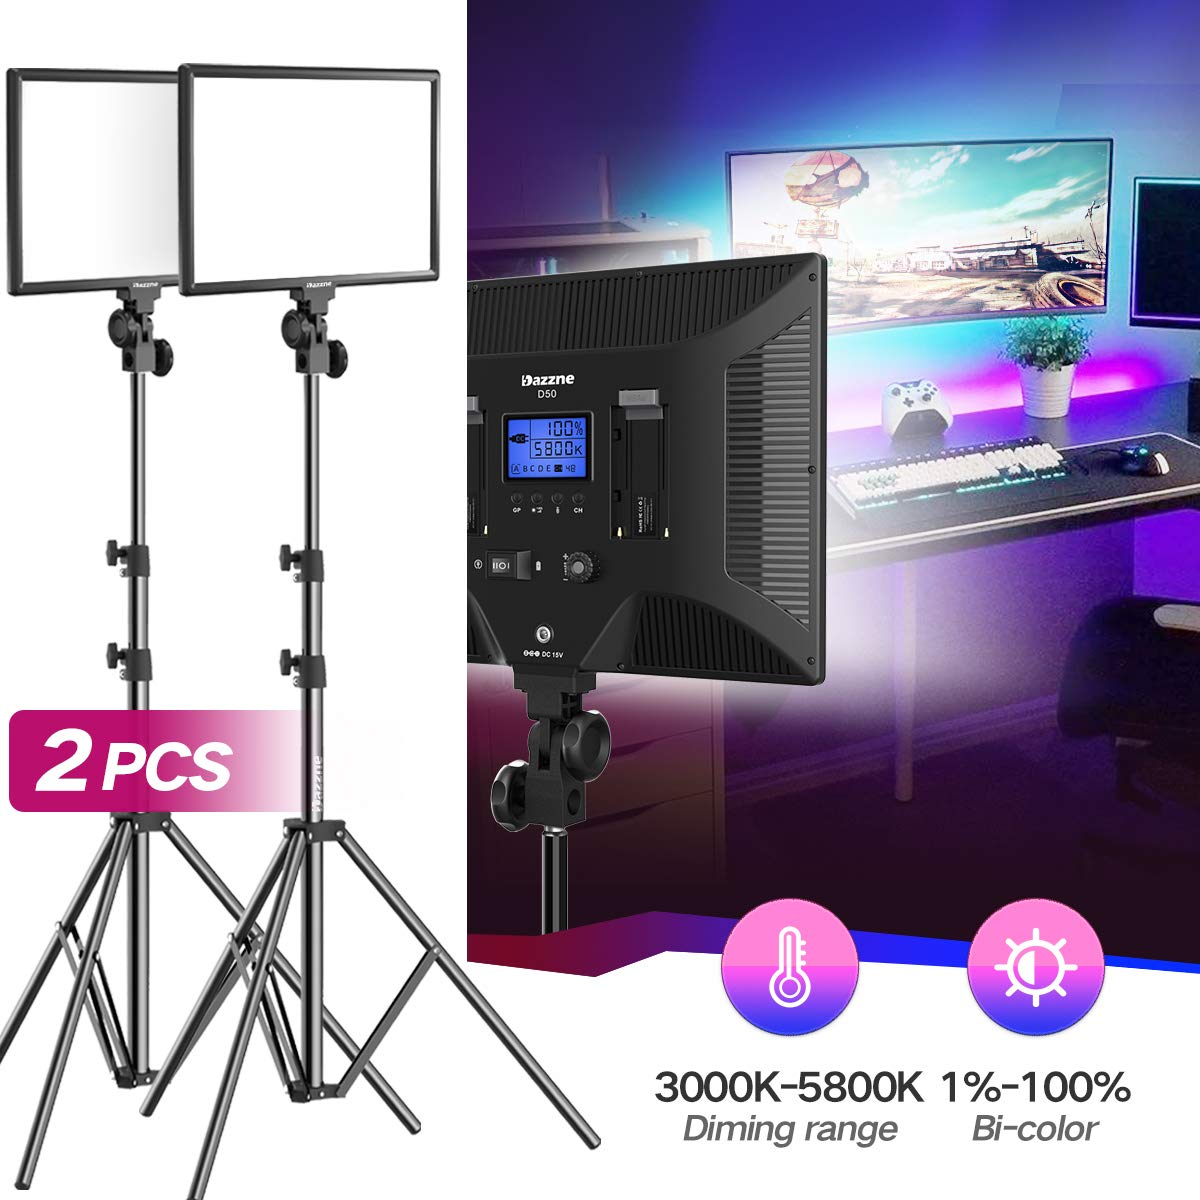 Bi-Color LED Video Light Stand Lighting Kit 2 Pack 15.4'' Large Panel 3000K-5800K 45W 4800LM Dimmable 1-100% Brightness Soft Light for YouTube Game Video Shooting Live Stream Photography Lighting by Dazzne